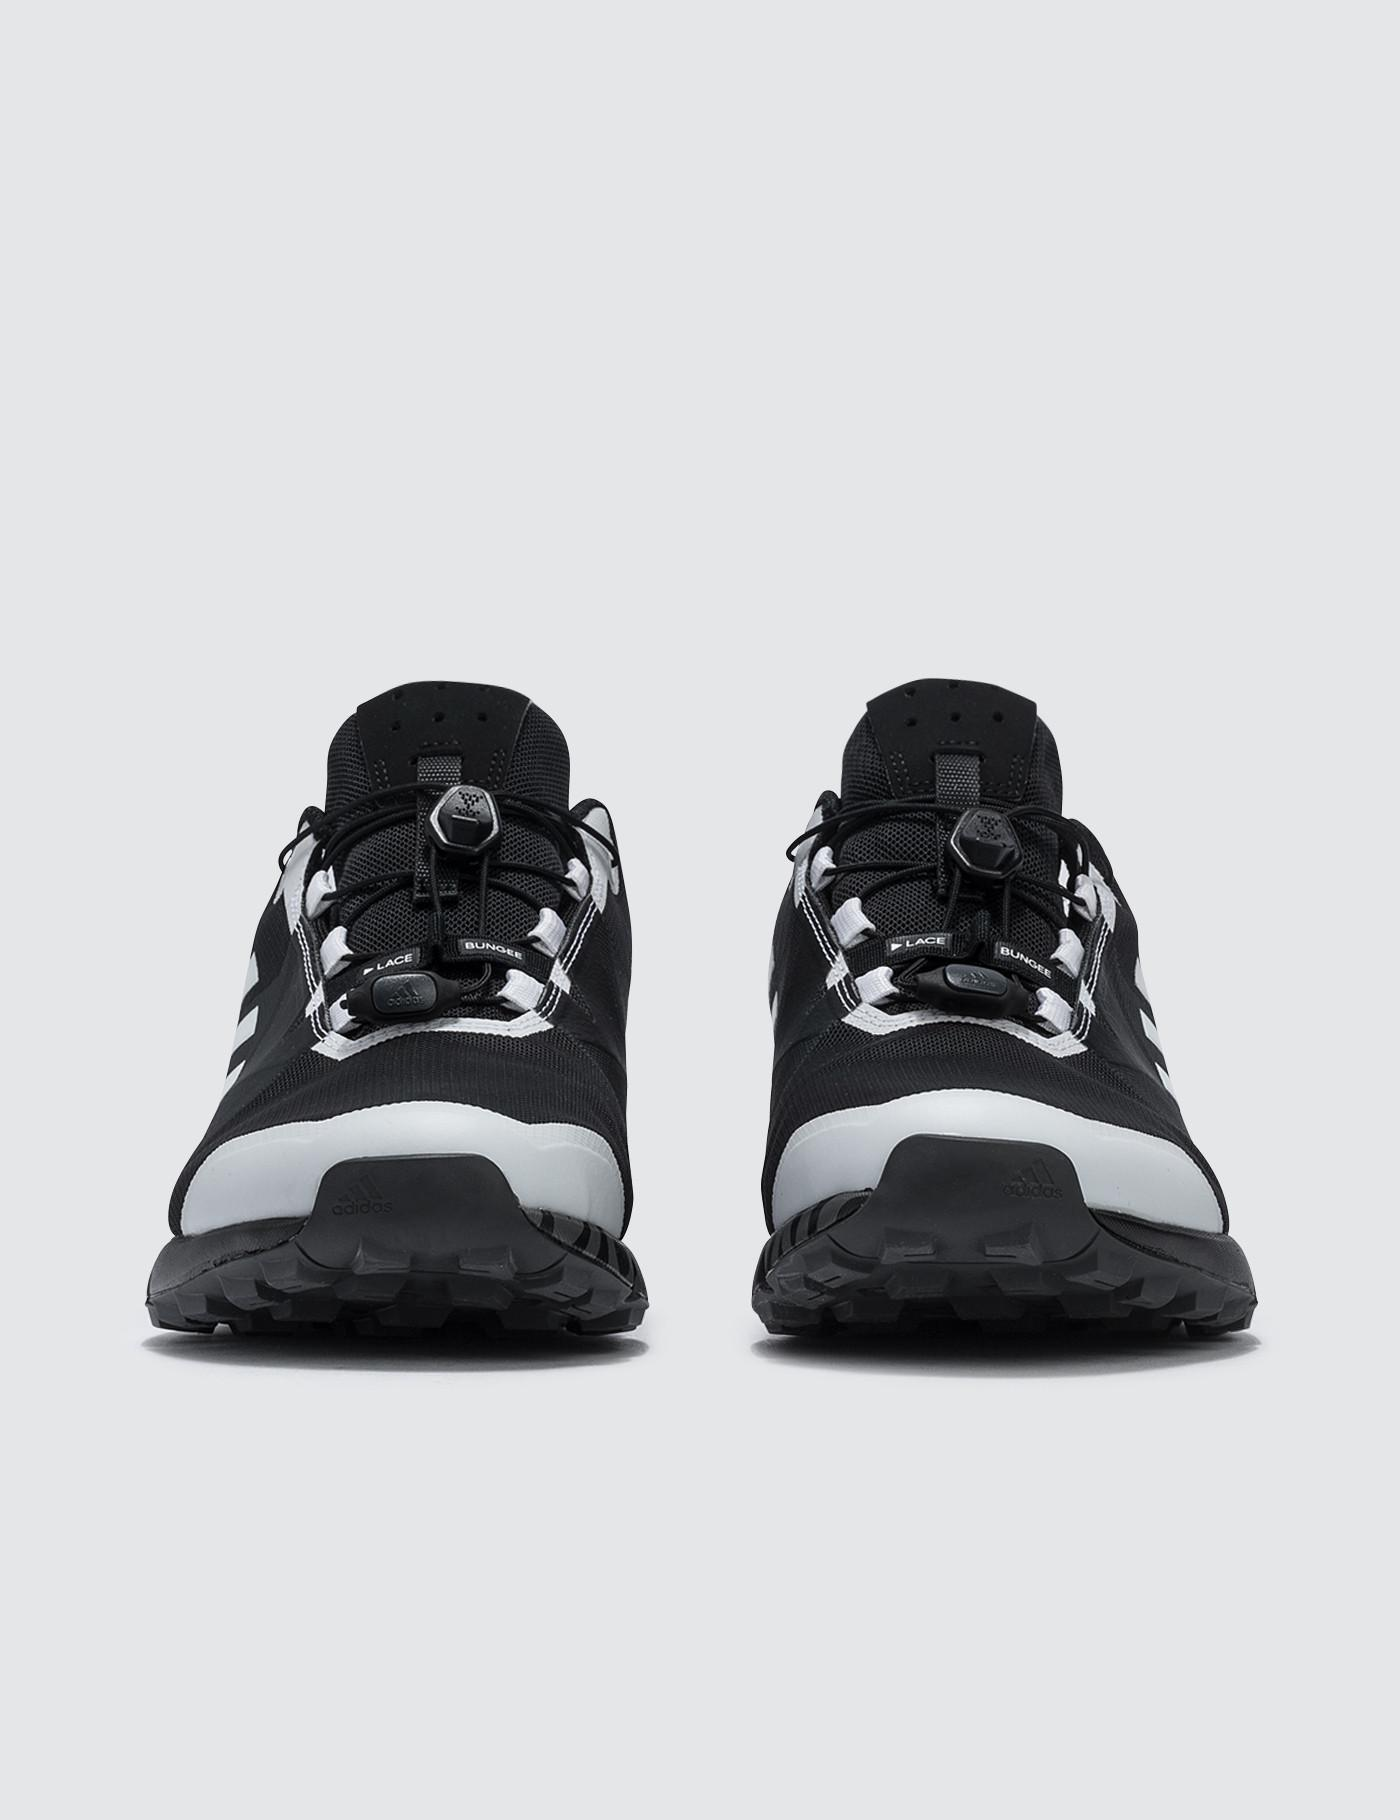 109c3d5e2b5c Adidas Originals White Mountaineering X Adidas Terrex Two Gtx in Black for  Men - Lyst